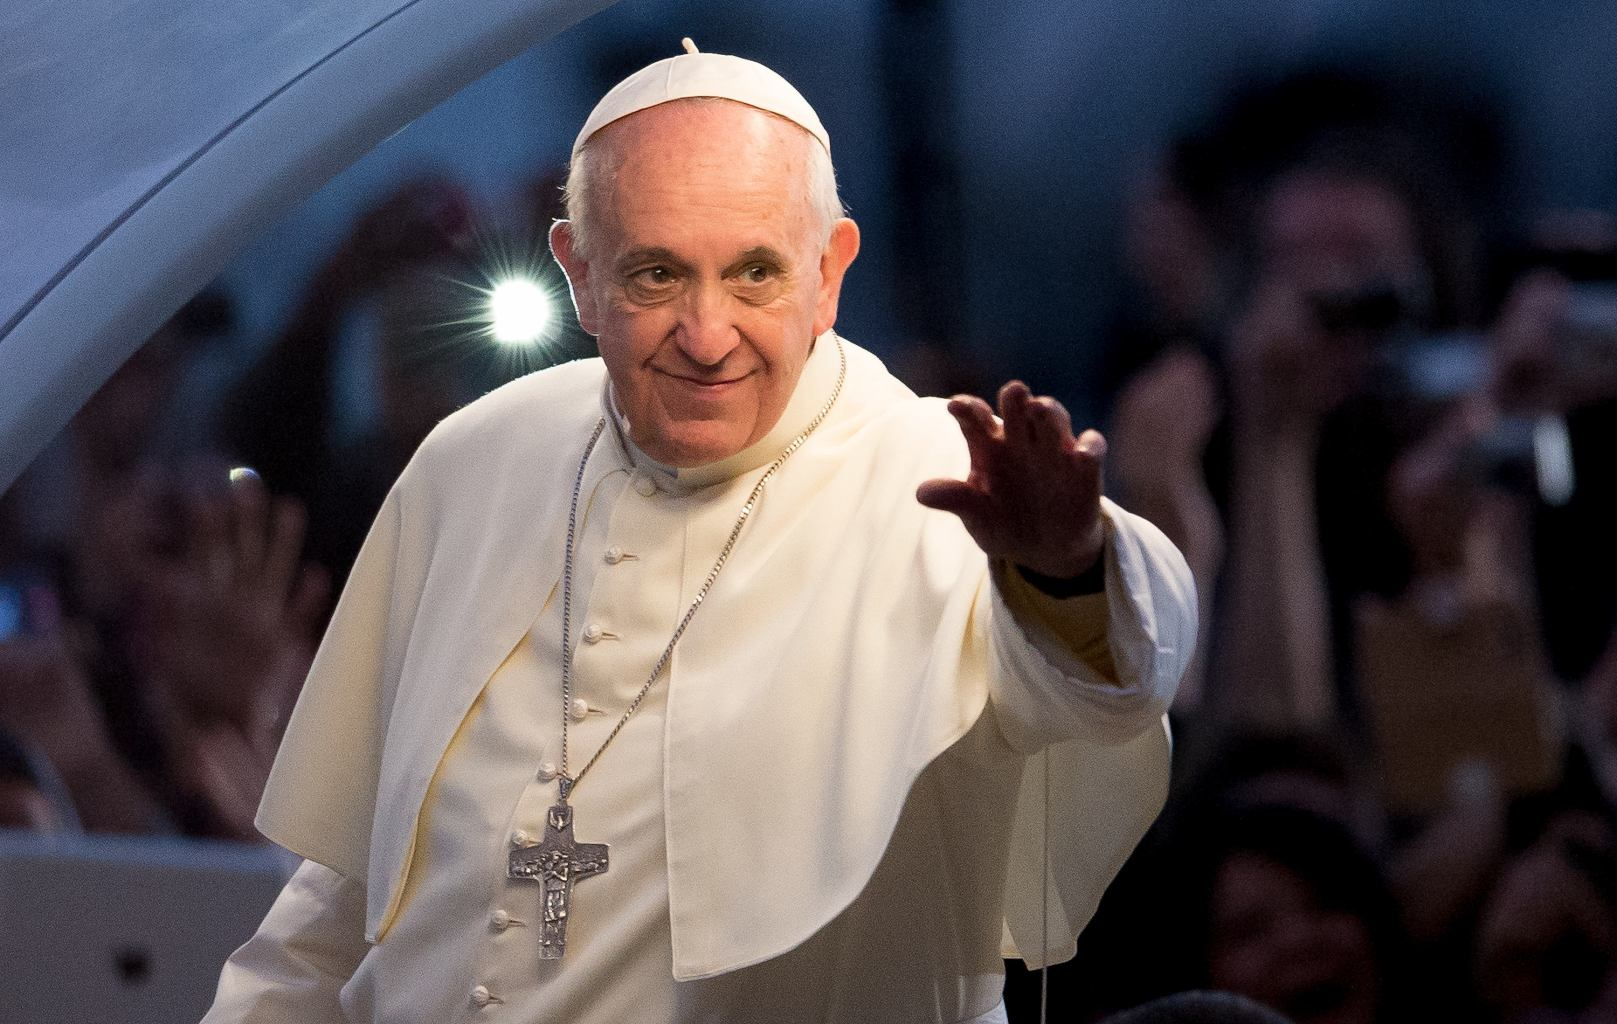 Pope Francis Cancels Visit With Rome Priests Due to 'Slight' Illness